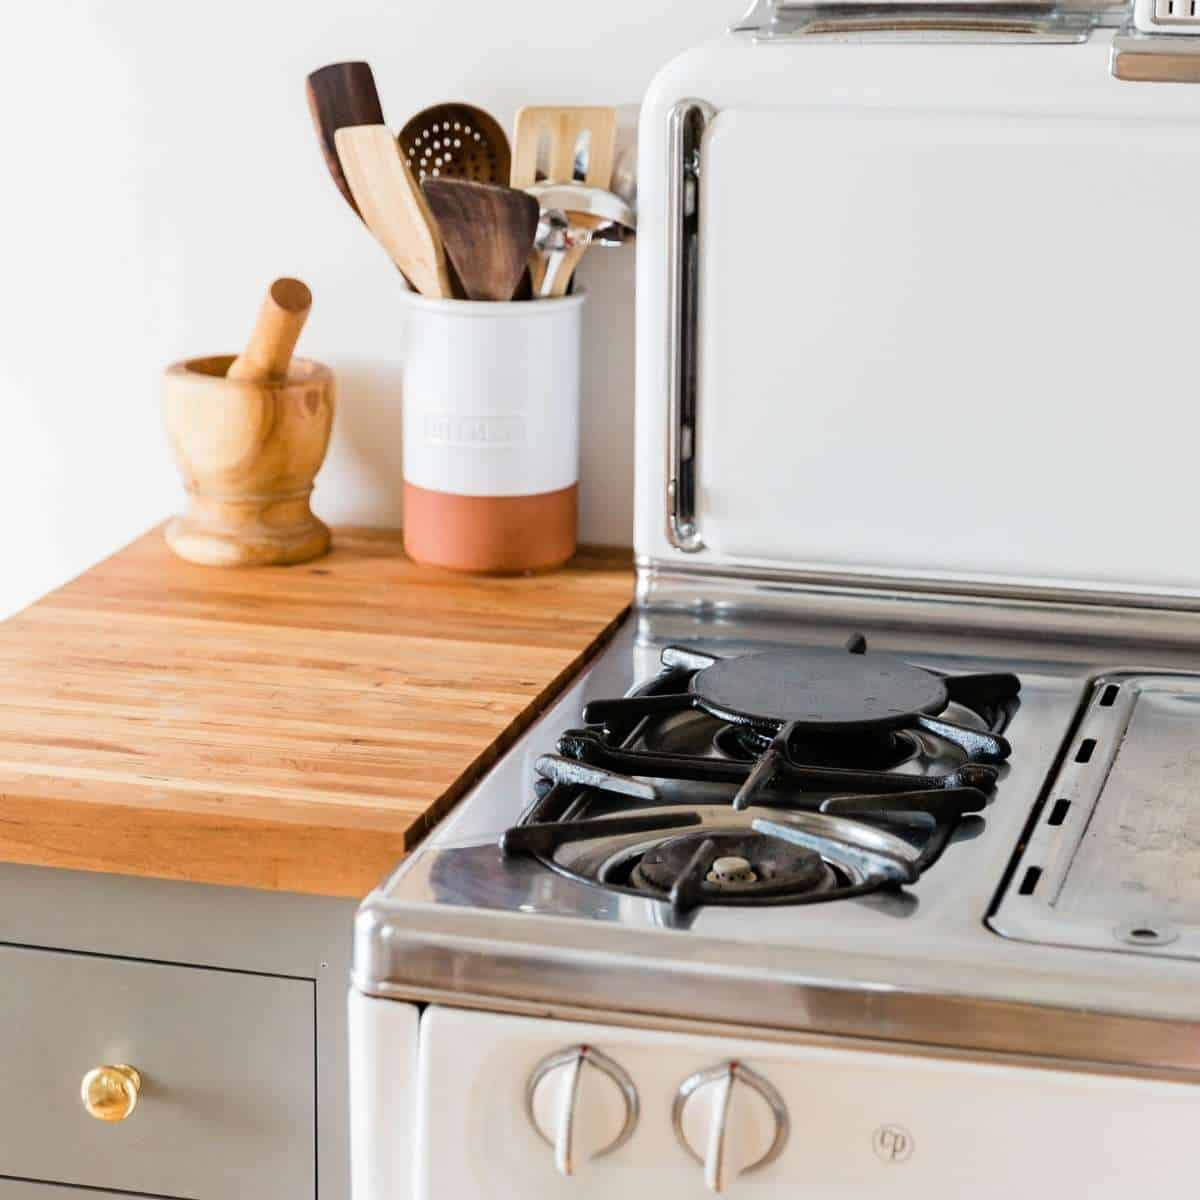 kitchen counter and clean vintage stove